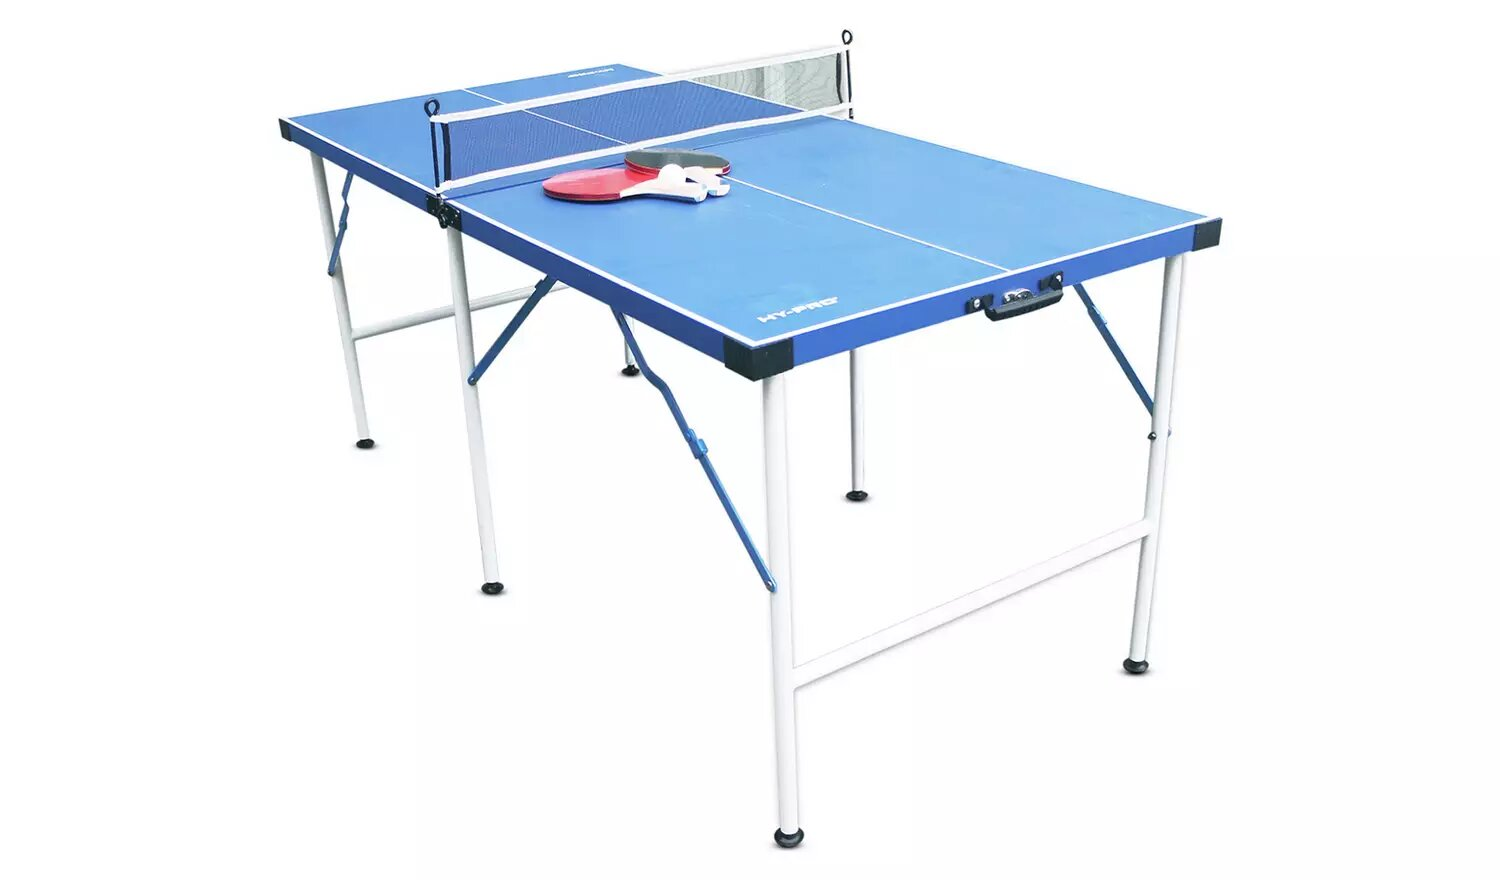 Hy-Pro 5ft Folding Table Tennis Table.